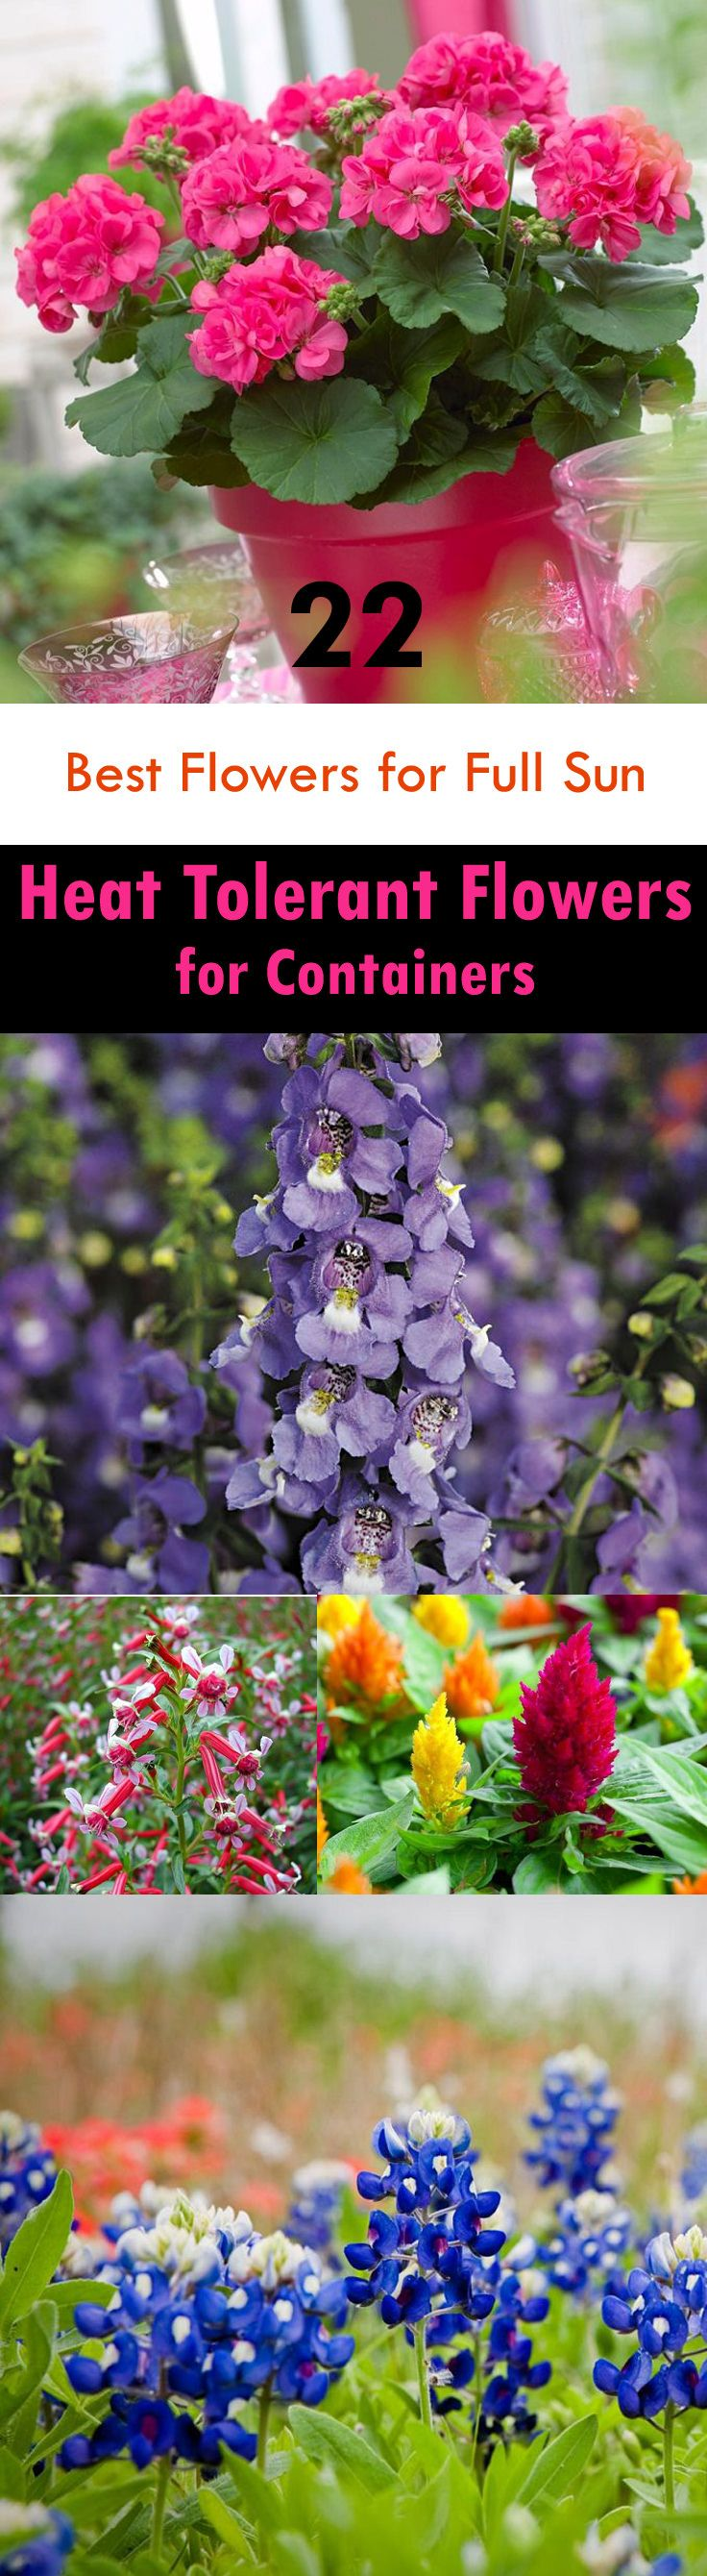 22 Best Flowers For Full Sun Heat Tolerant Flowers For Containers Heat Tolerant Flowers Full Sun Flowers Heat Tolerant Plants